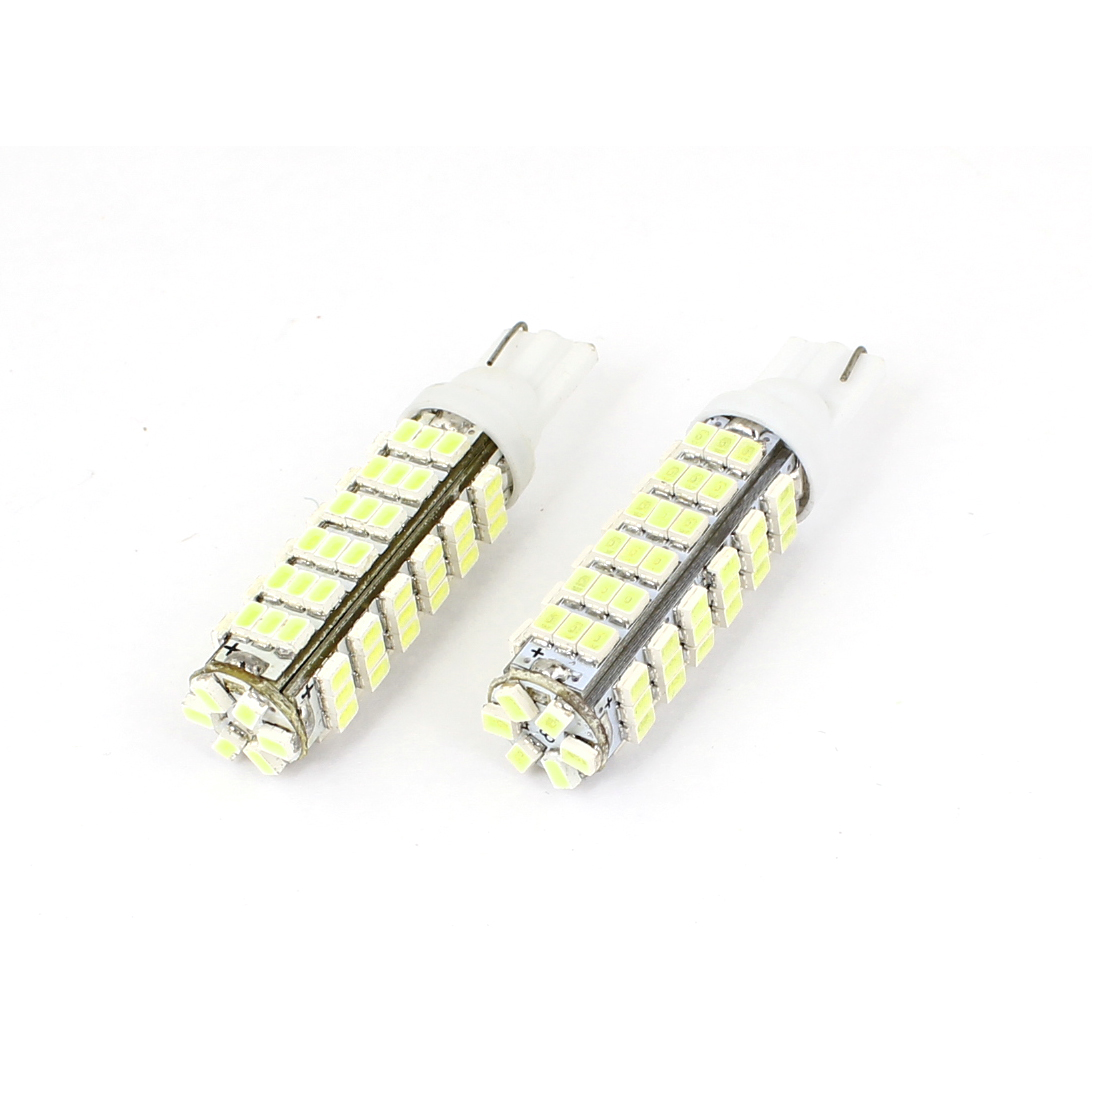 T10 White 78 LED 1206 SMD Dashboard Turn Tail Light Bulb 2 PCS for Car